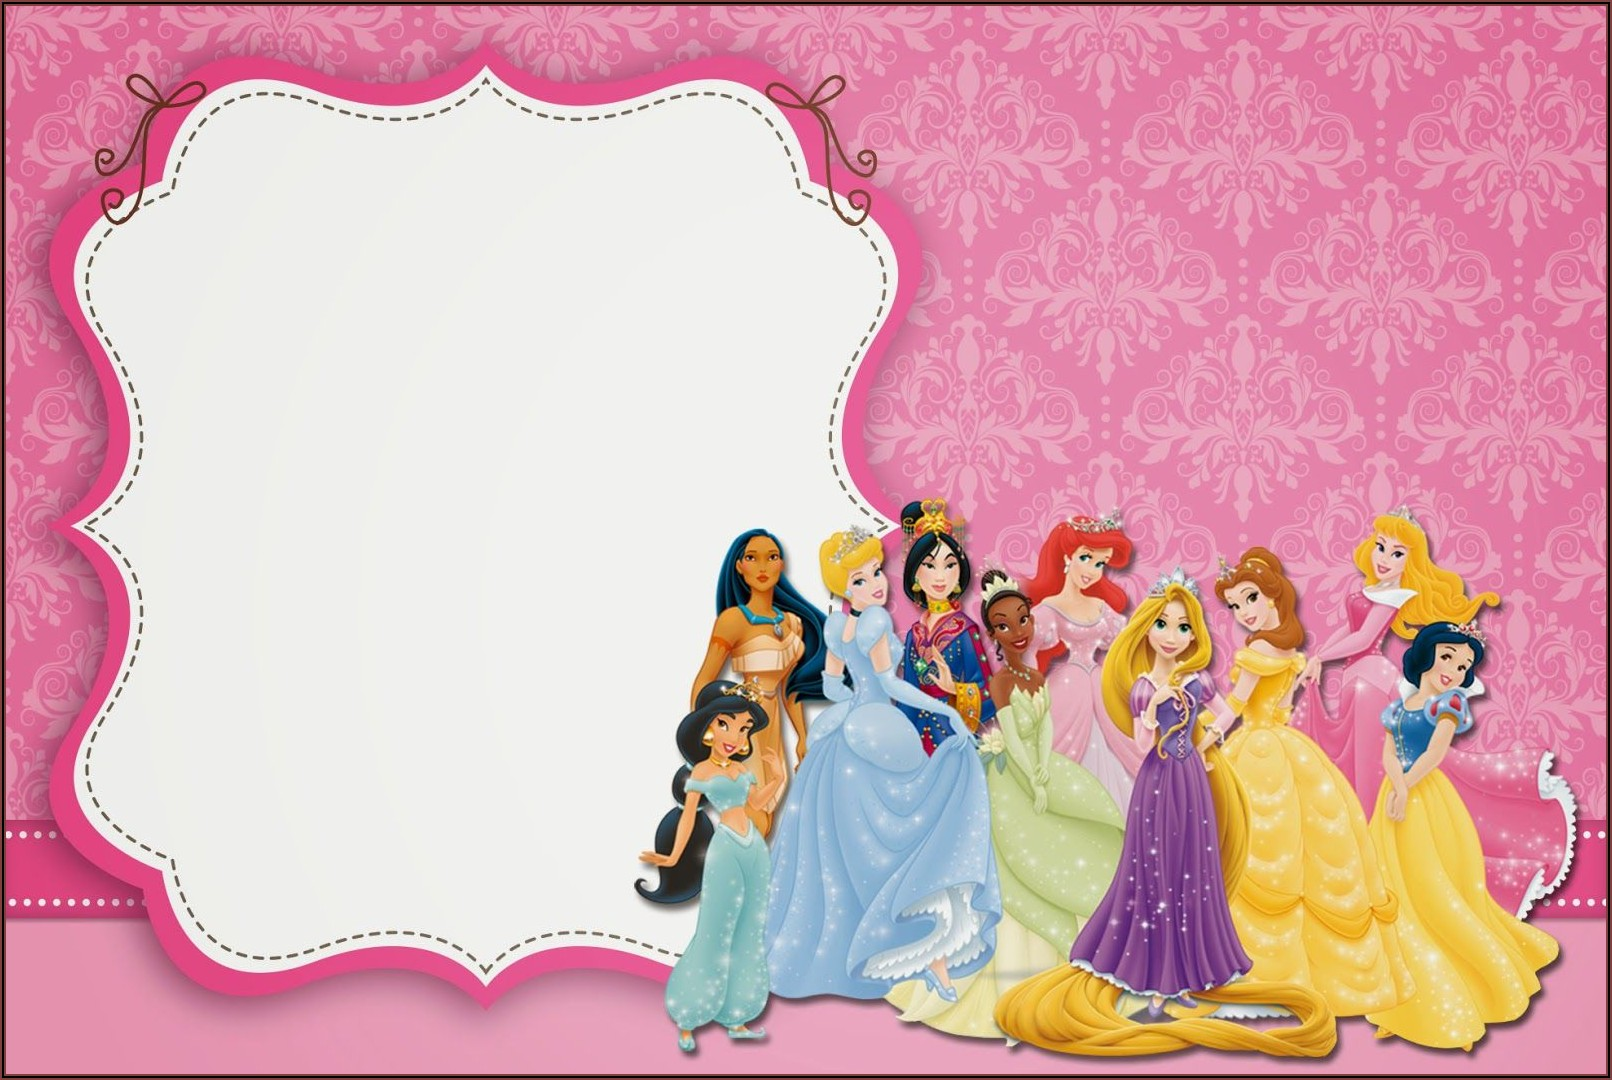 Disney Princess Party Invitations Free Printable